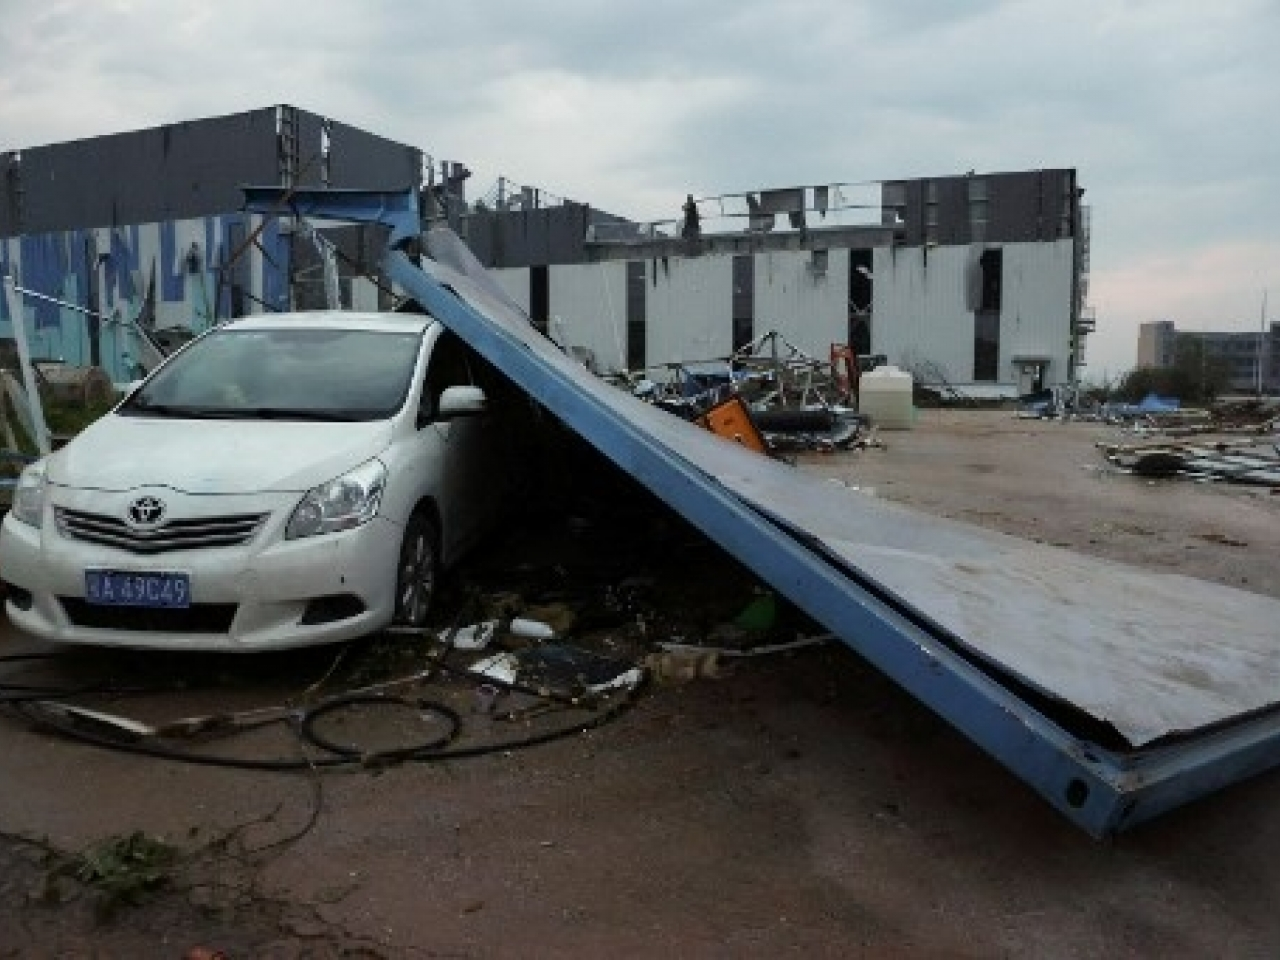 Damaged cars and buildings after a tornado hit an economic zone in Wuhan. Photo: AFP